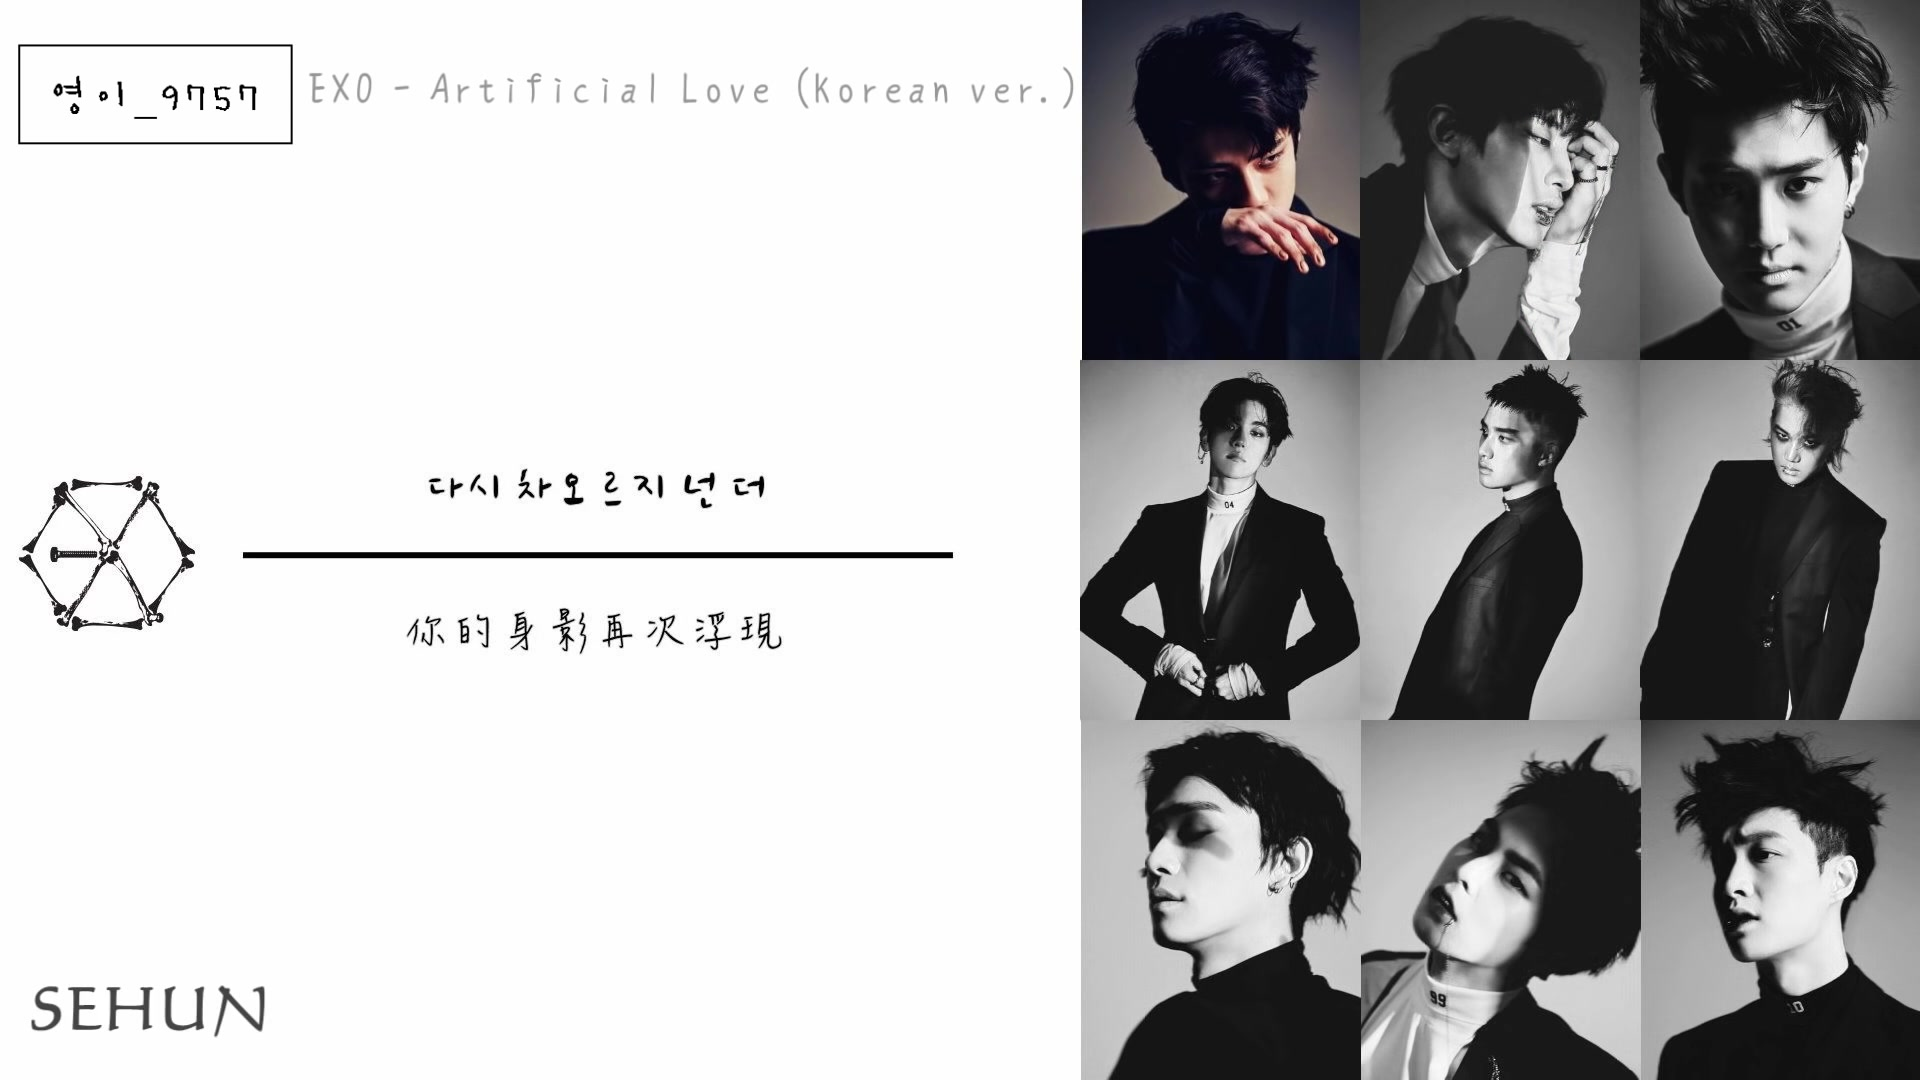 认声 中韩双字幕 Exo Artificial Love Korean Ver 哔哩哔哩